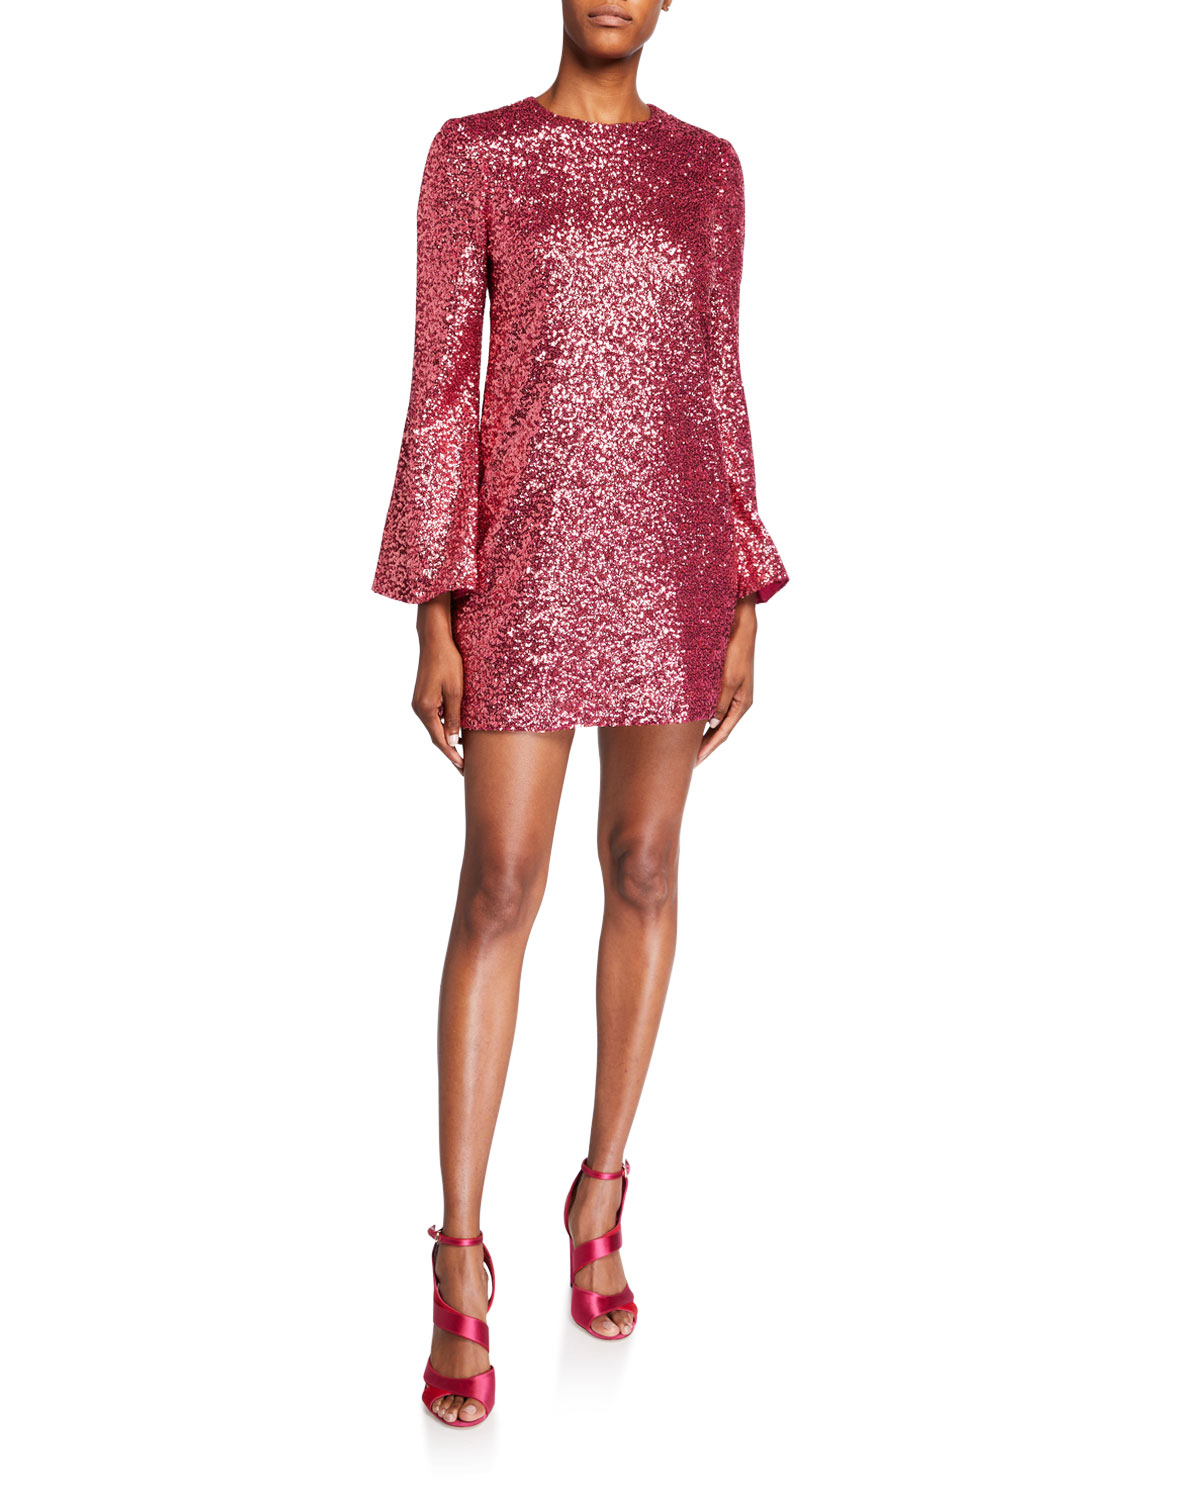 Jill Jill Stuart Sequin Flare-Sleeve Mini Tunic Dress